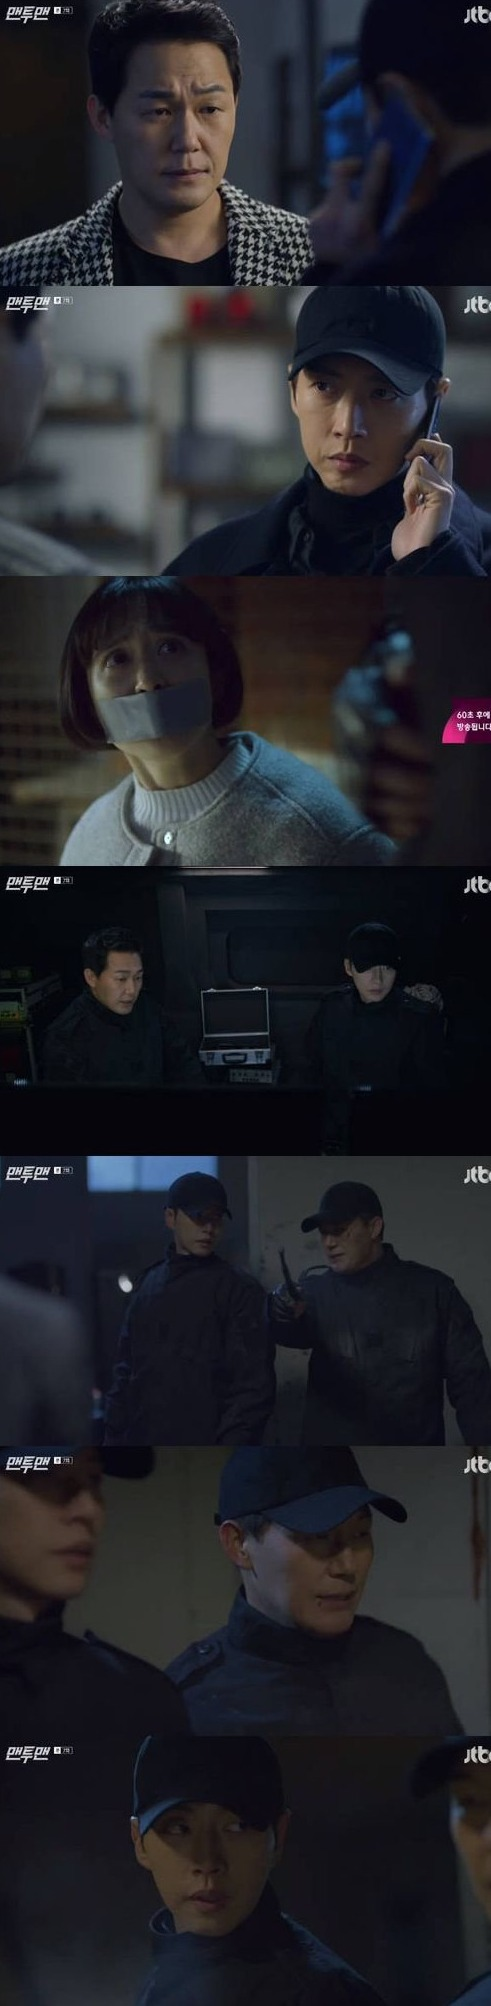 [Spoiler] Added episodes 7 and 8 captures for the Korean drama 'Man to Man'